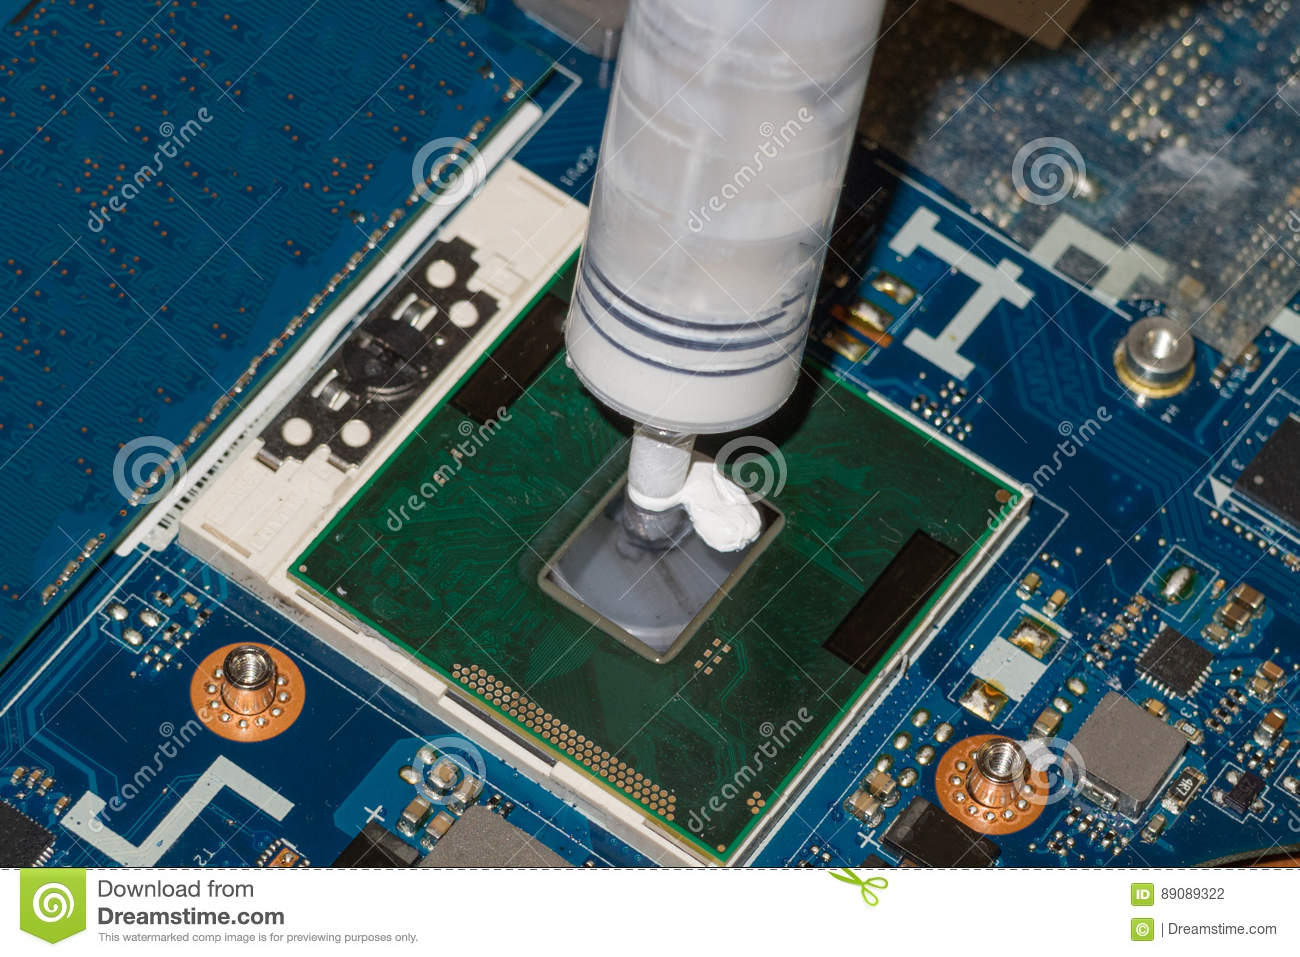 application of thermal paste